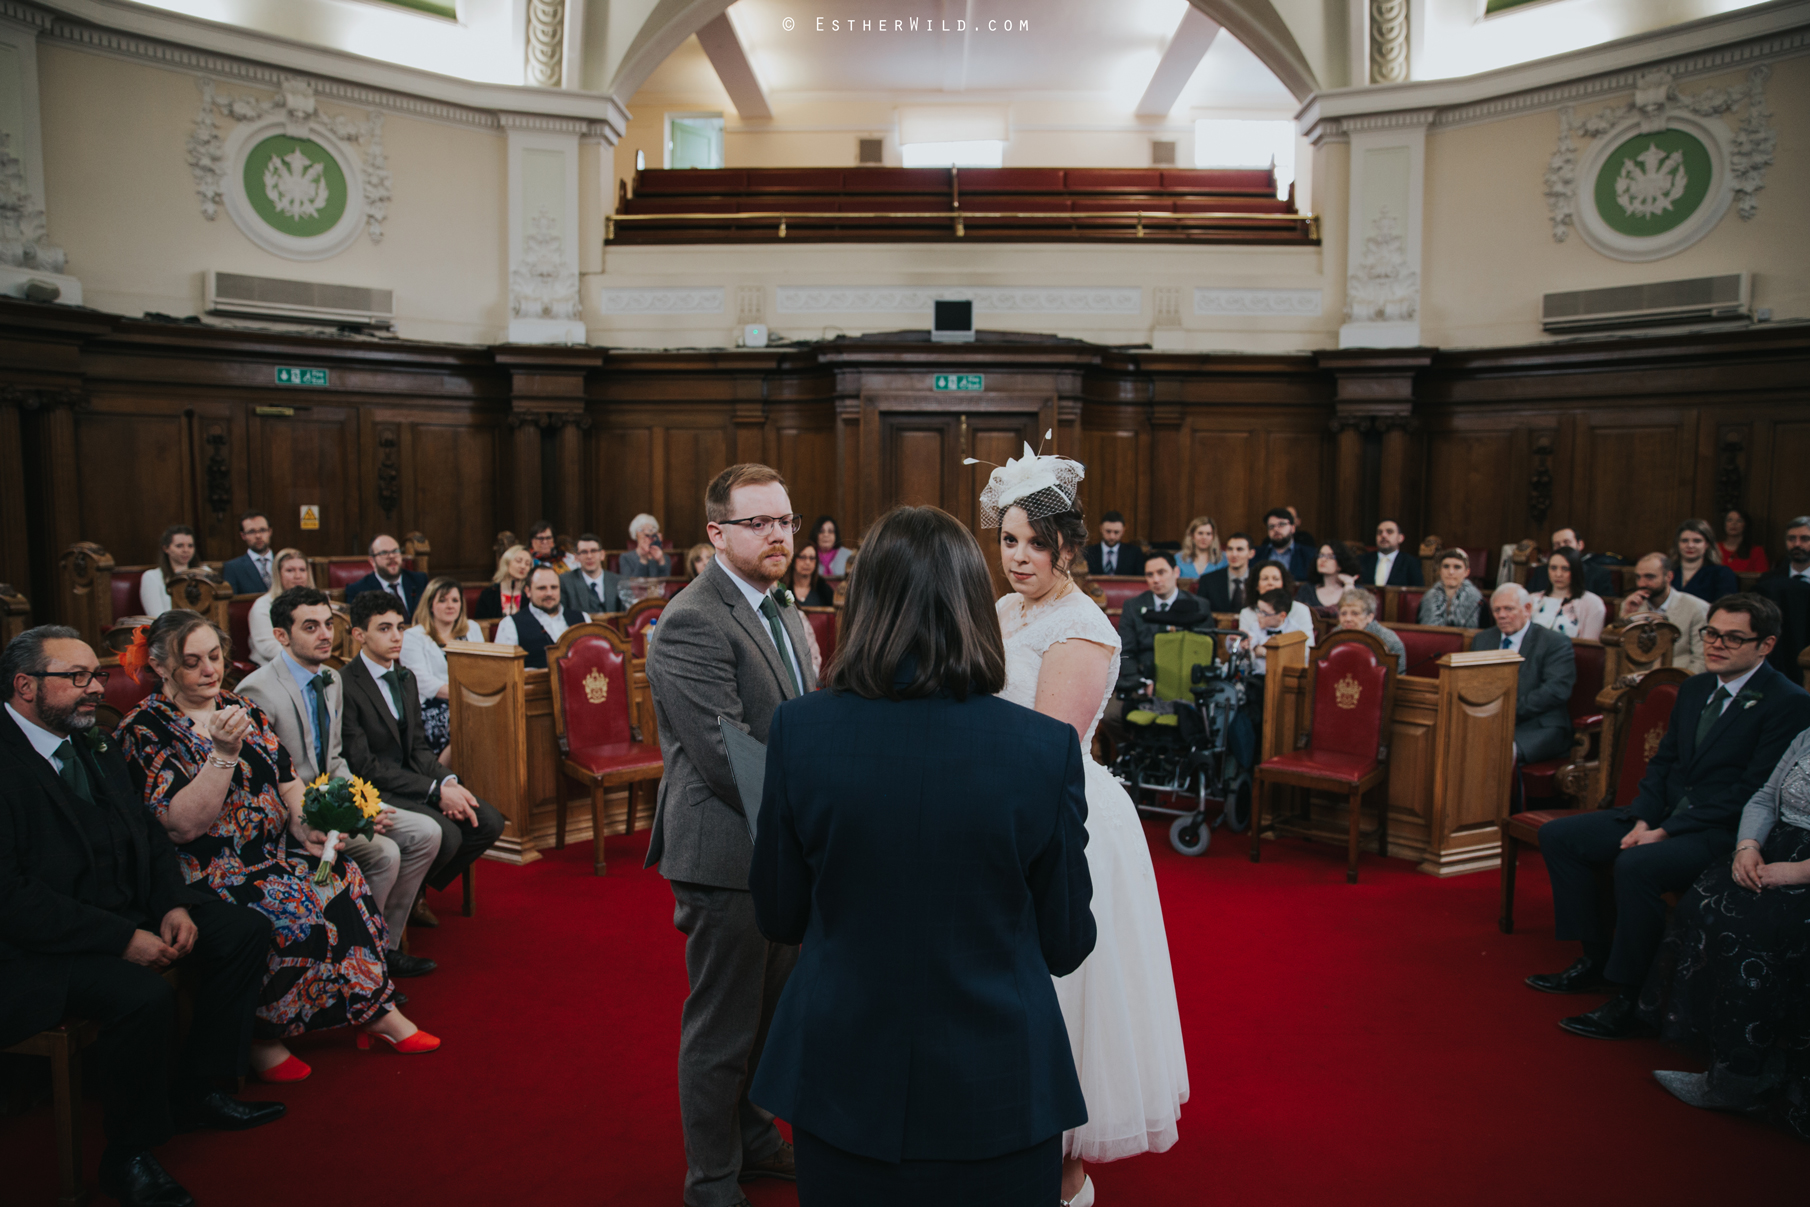 Islington_Town_Hall_Assembly_Hall_Council_Chamber_The_Star_Pub_London_Sacred_Wedding_Copyright_Esther_Wild_Photographer_IMG_0314.jpg